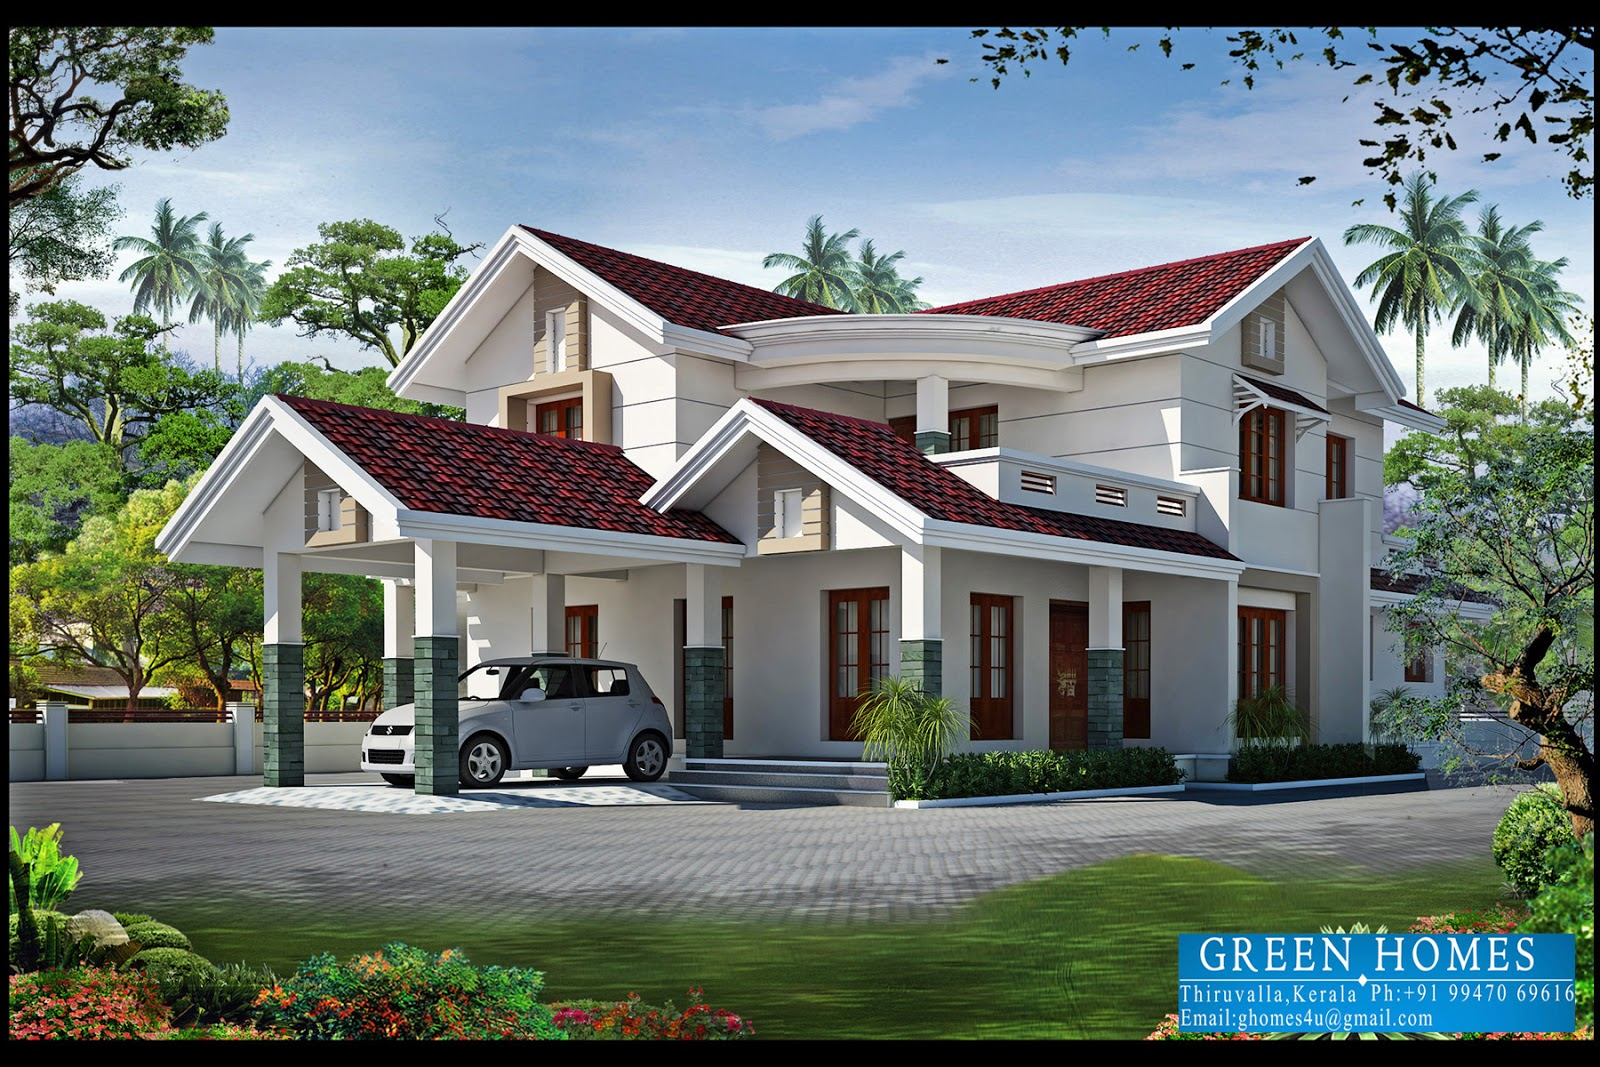 Green homes december 2012 for Latest kerala model house plans